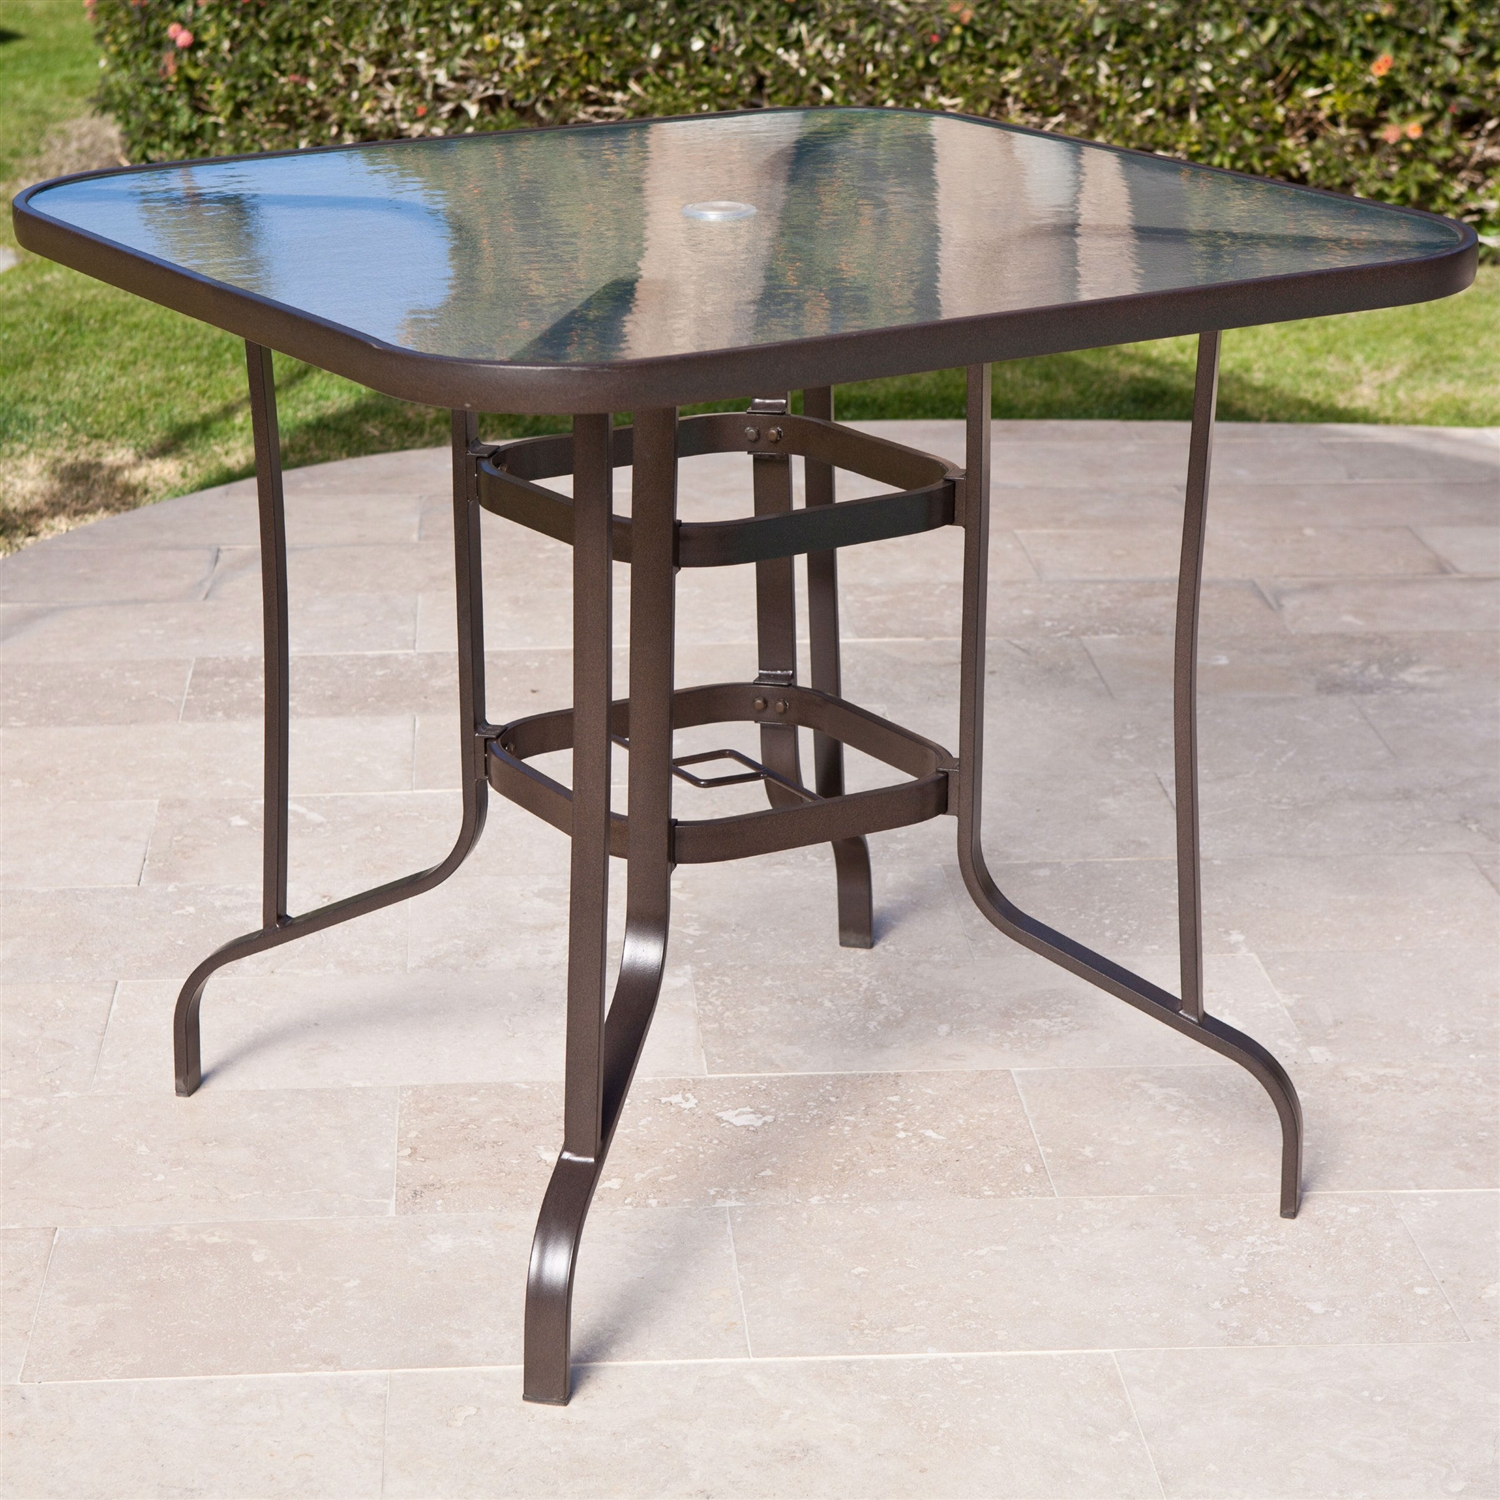 40 inch outdoor patio dining table with glass top and umbrella hole